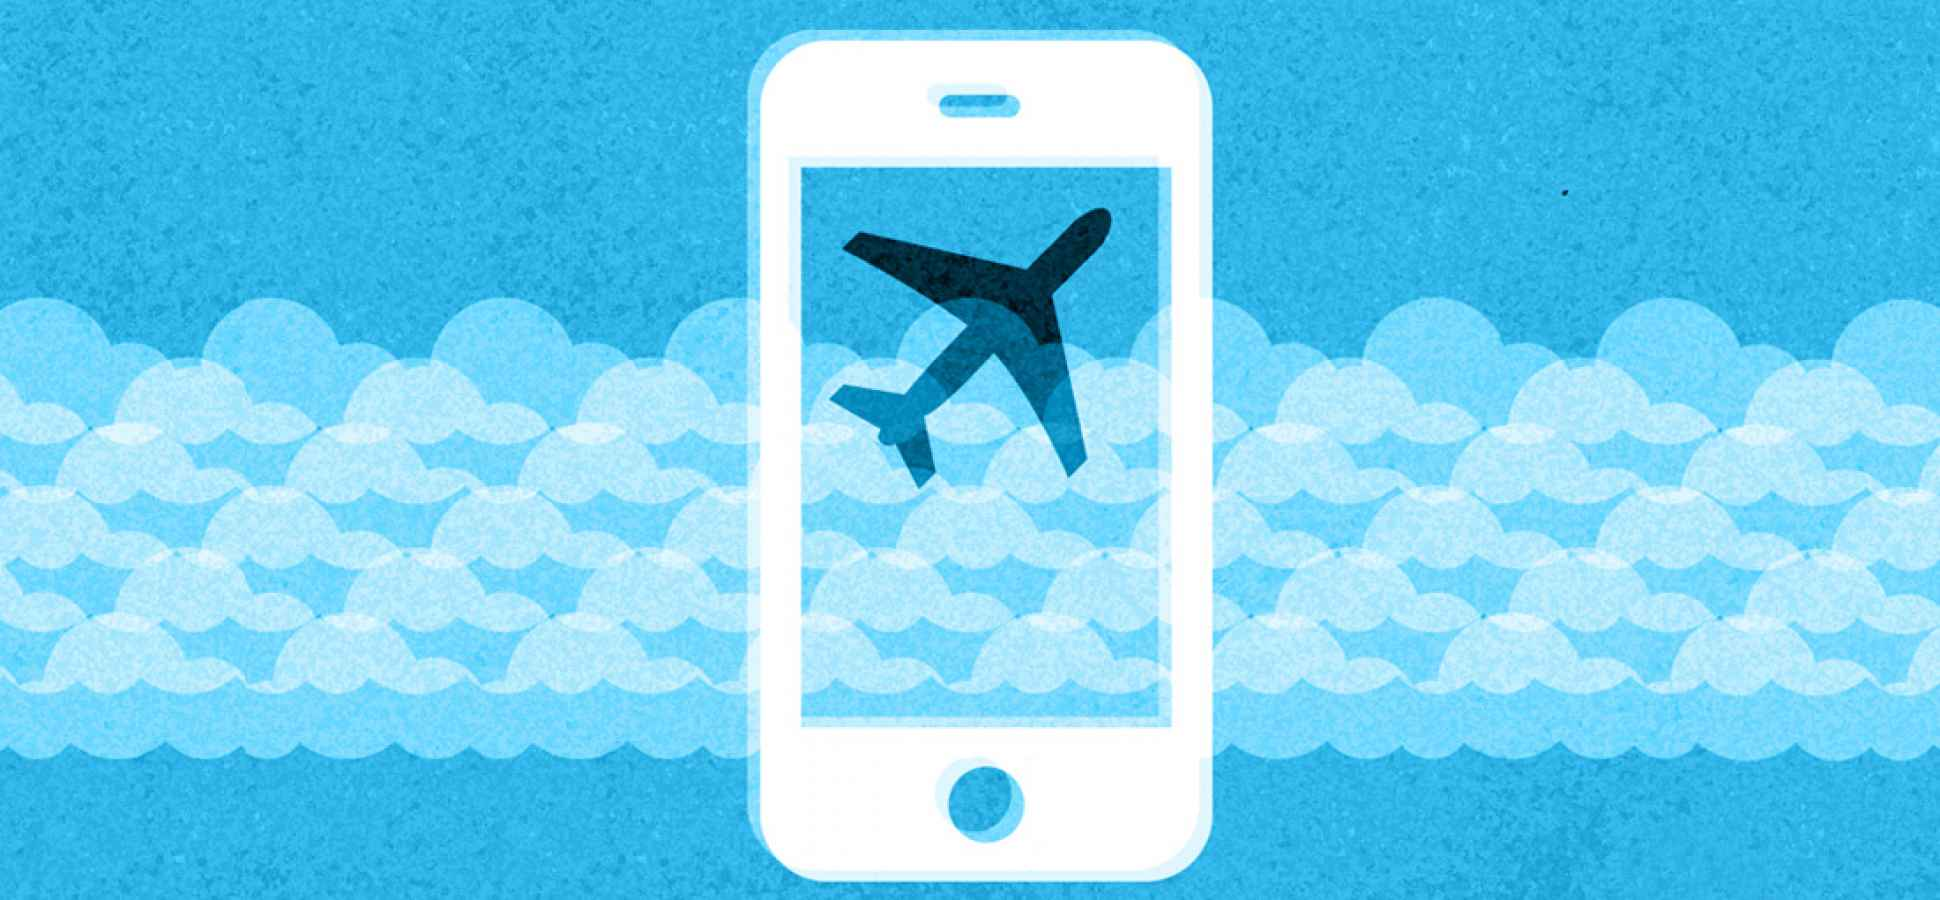 6 Airline App Features That Make Business Travel a Breeze